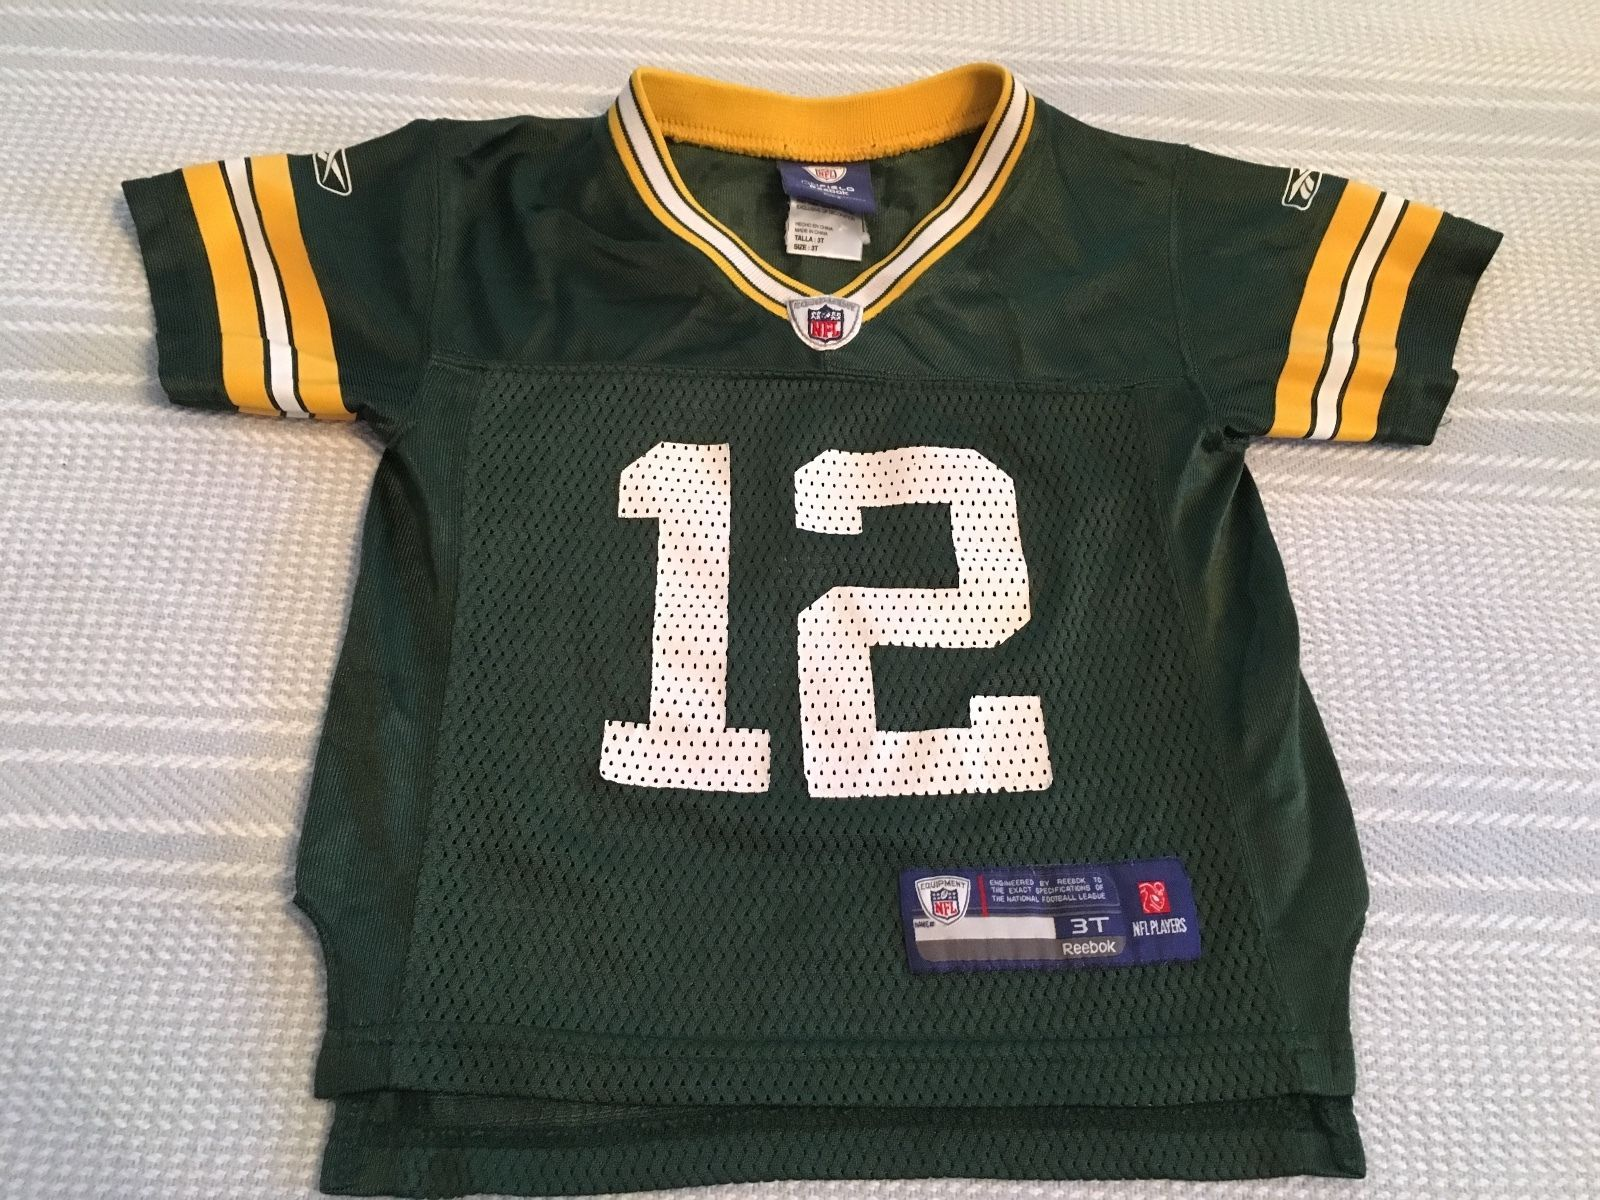 Green Bay Packersreebok Onfield Jerseyaaron Rodgers 12green With Yellow White Accentstoddler Size 3t15 Inches From Shoulder To Front With Images Green Bay Jersey Reebok